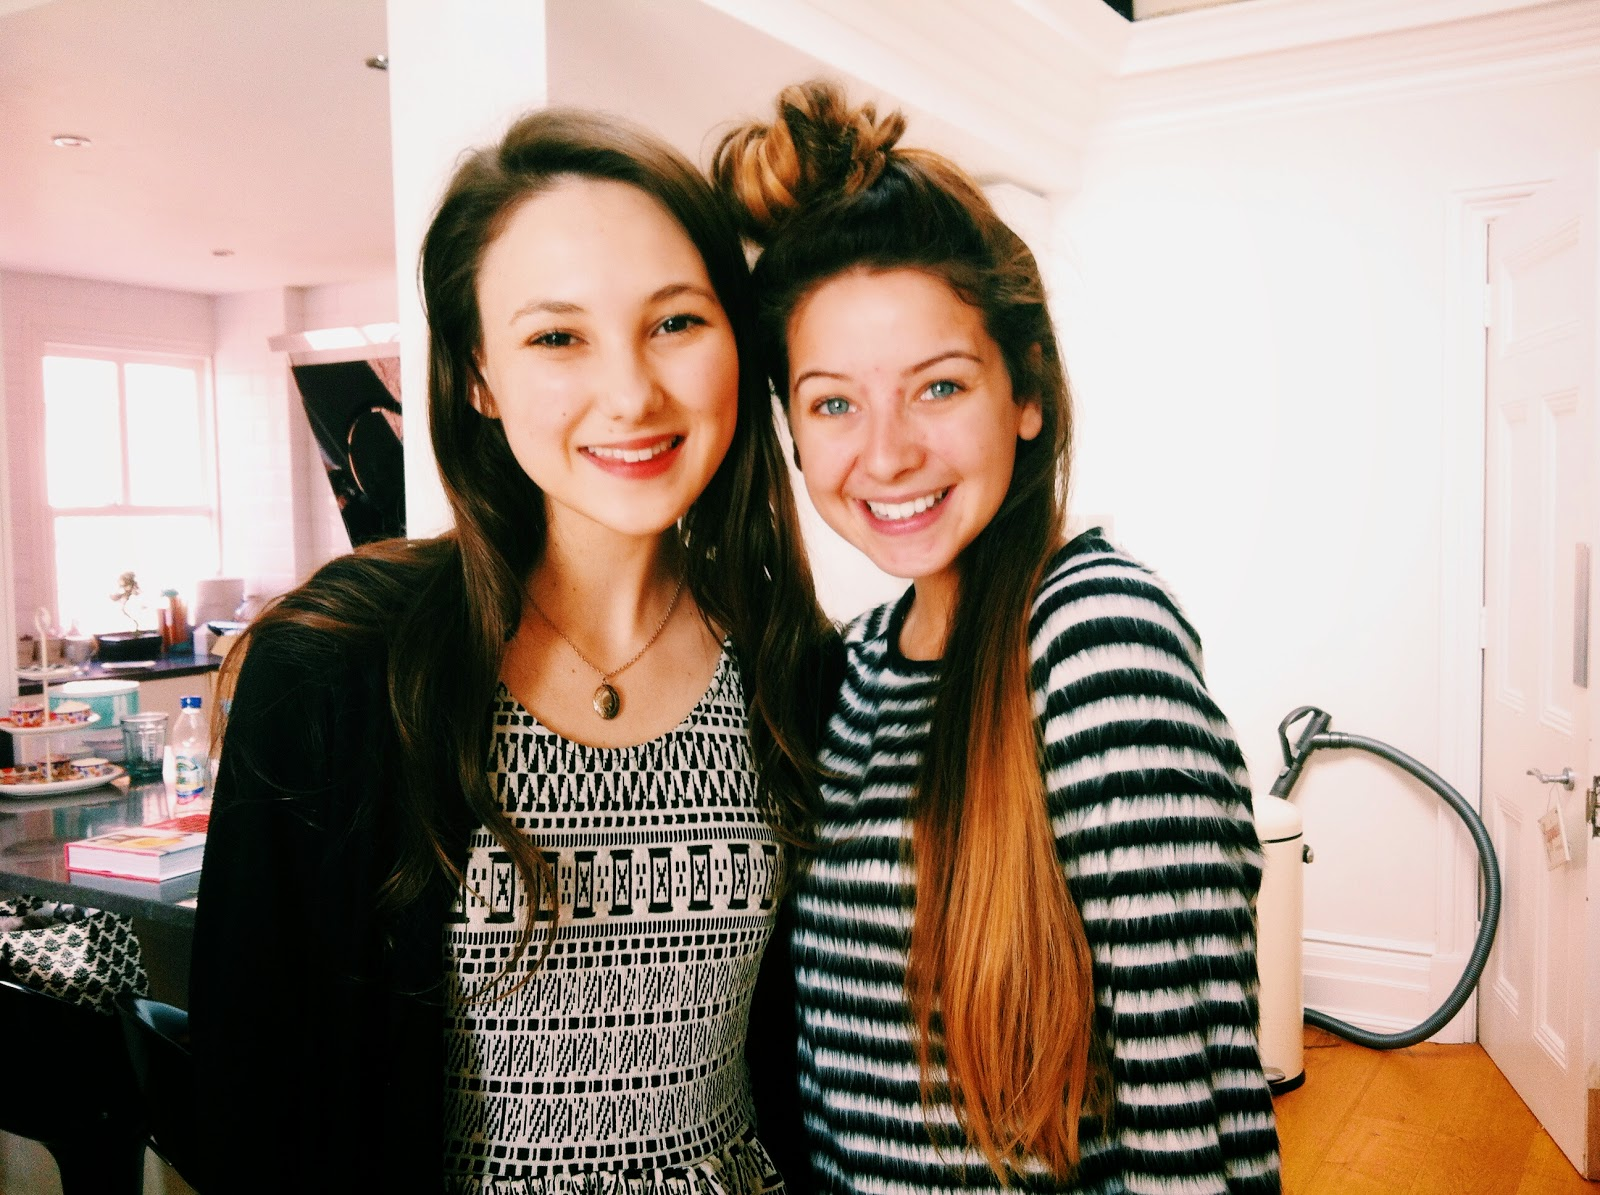 Ruby leighs blog interviewing zoella and brighton funzies not only was she amazing to interview and meet but she was also so lovely and gave me some advice about my blog and about life in general m4hsunfo